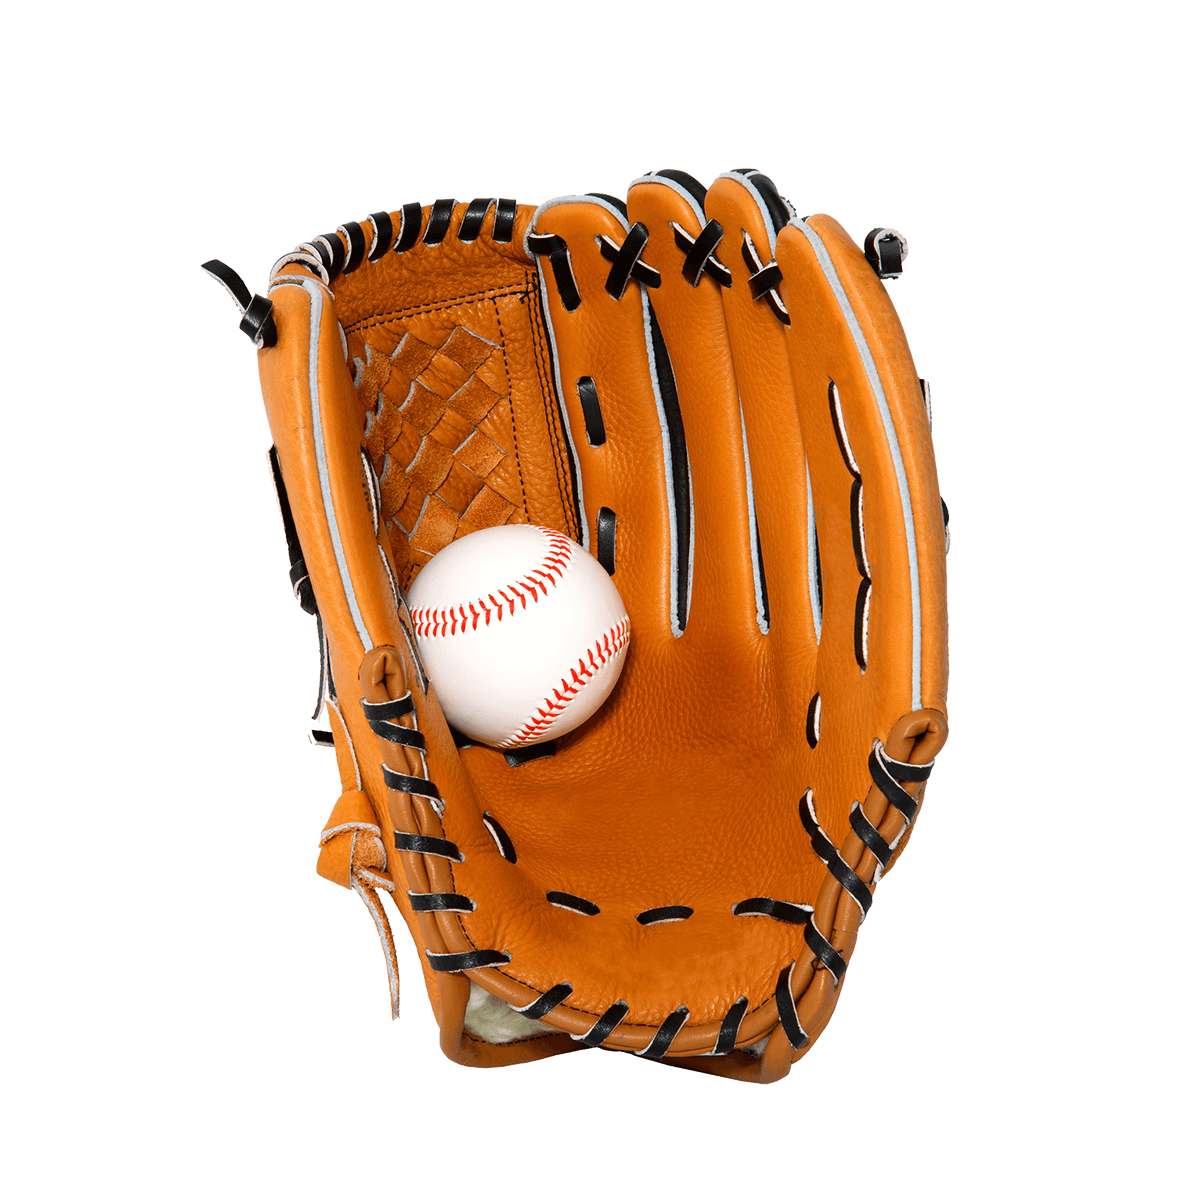 https://toulousebaseball.com/wp-content/uploads/2017/11/product_21.png